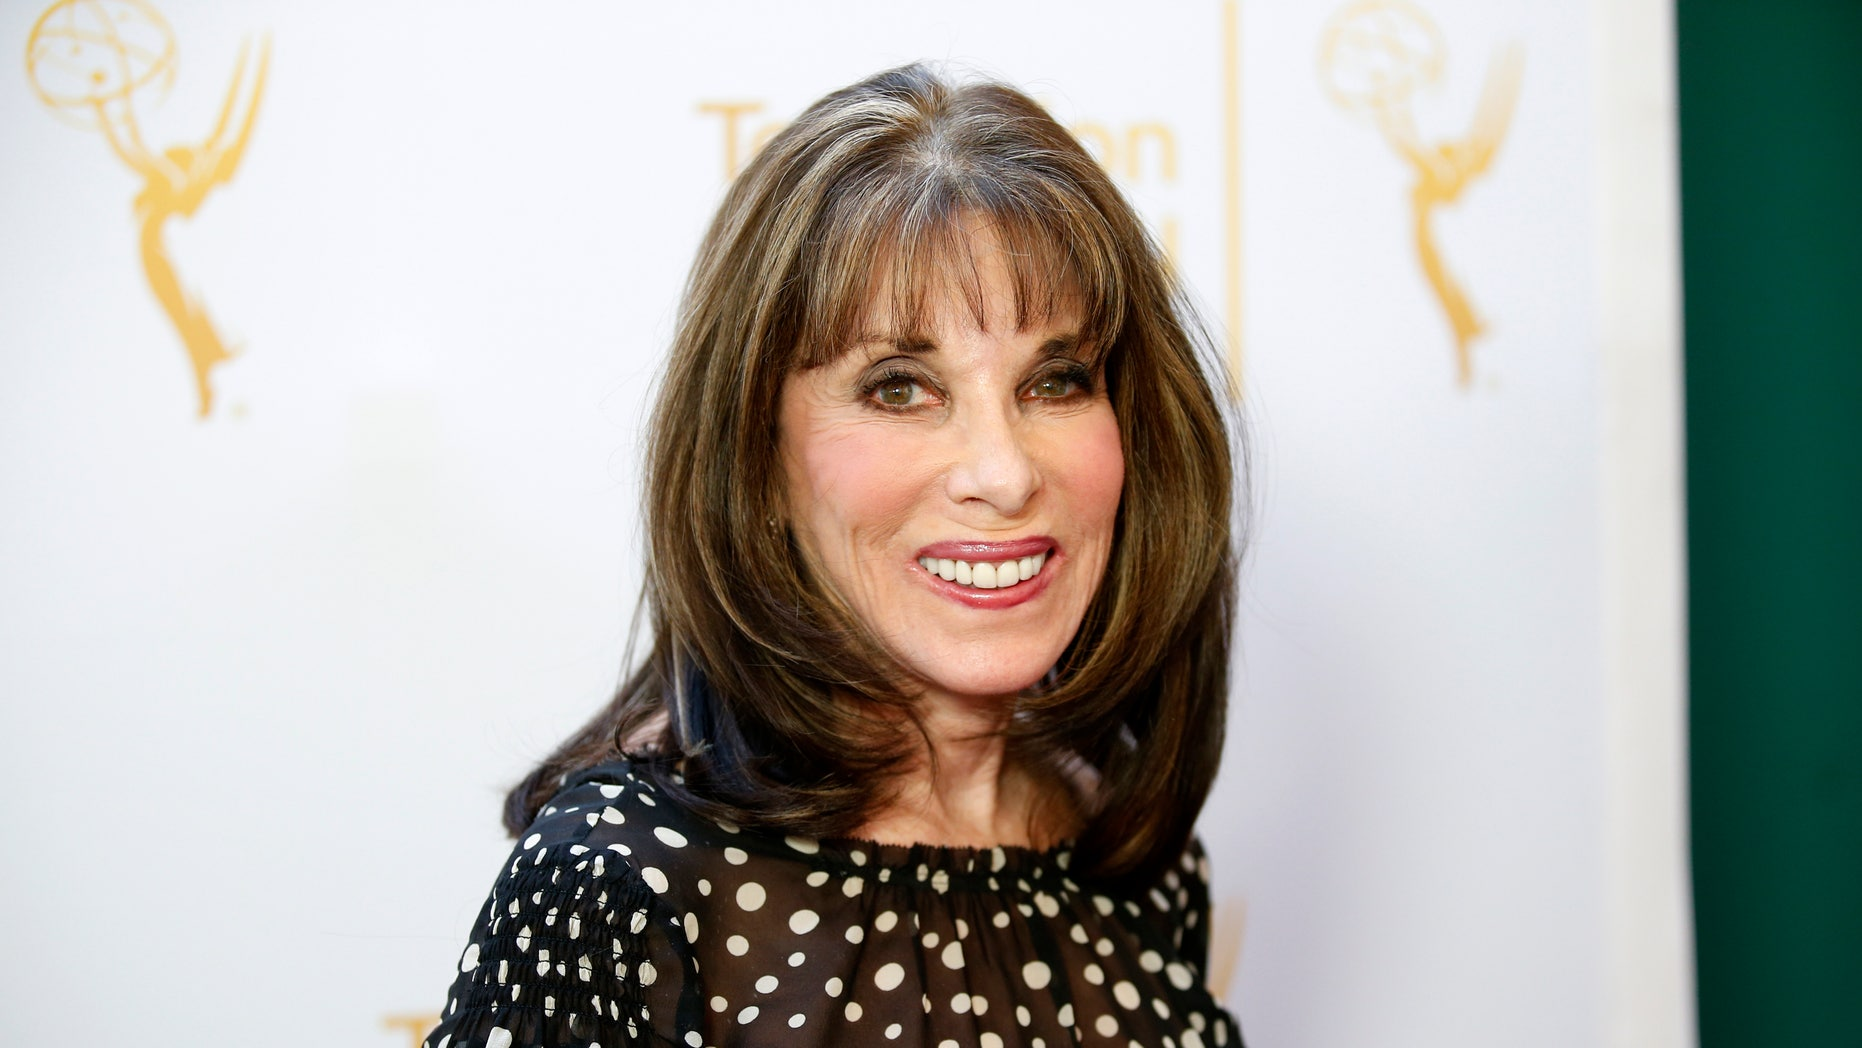 Actress Kate Linder poses at the Television Academy's Performers Peer Group cocktail reception to celebrate the 66th Primetime Emmy Awards in Beverly Hills, California July 28, 2014.   REUTERS/Danny Moloshok   (UNITED STATES - Tags: ENTERTAINMENT) - RTR40GLJ